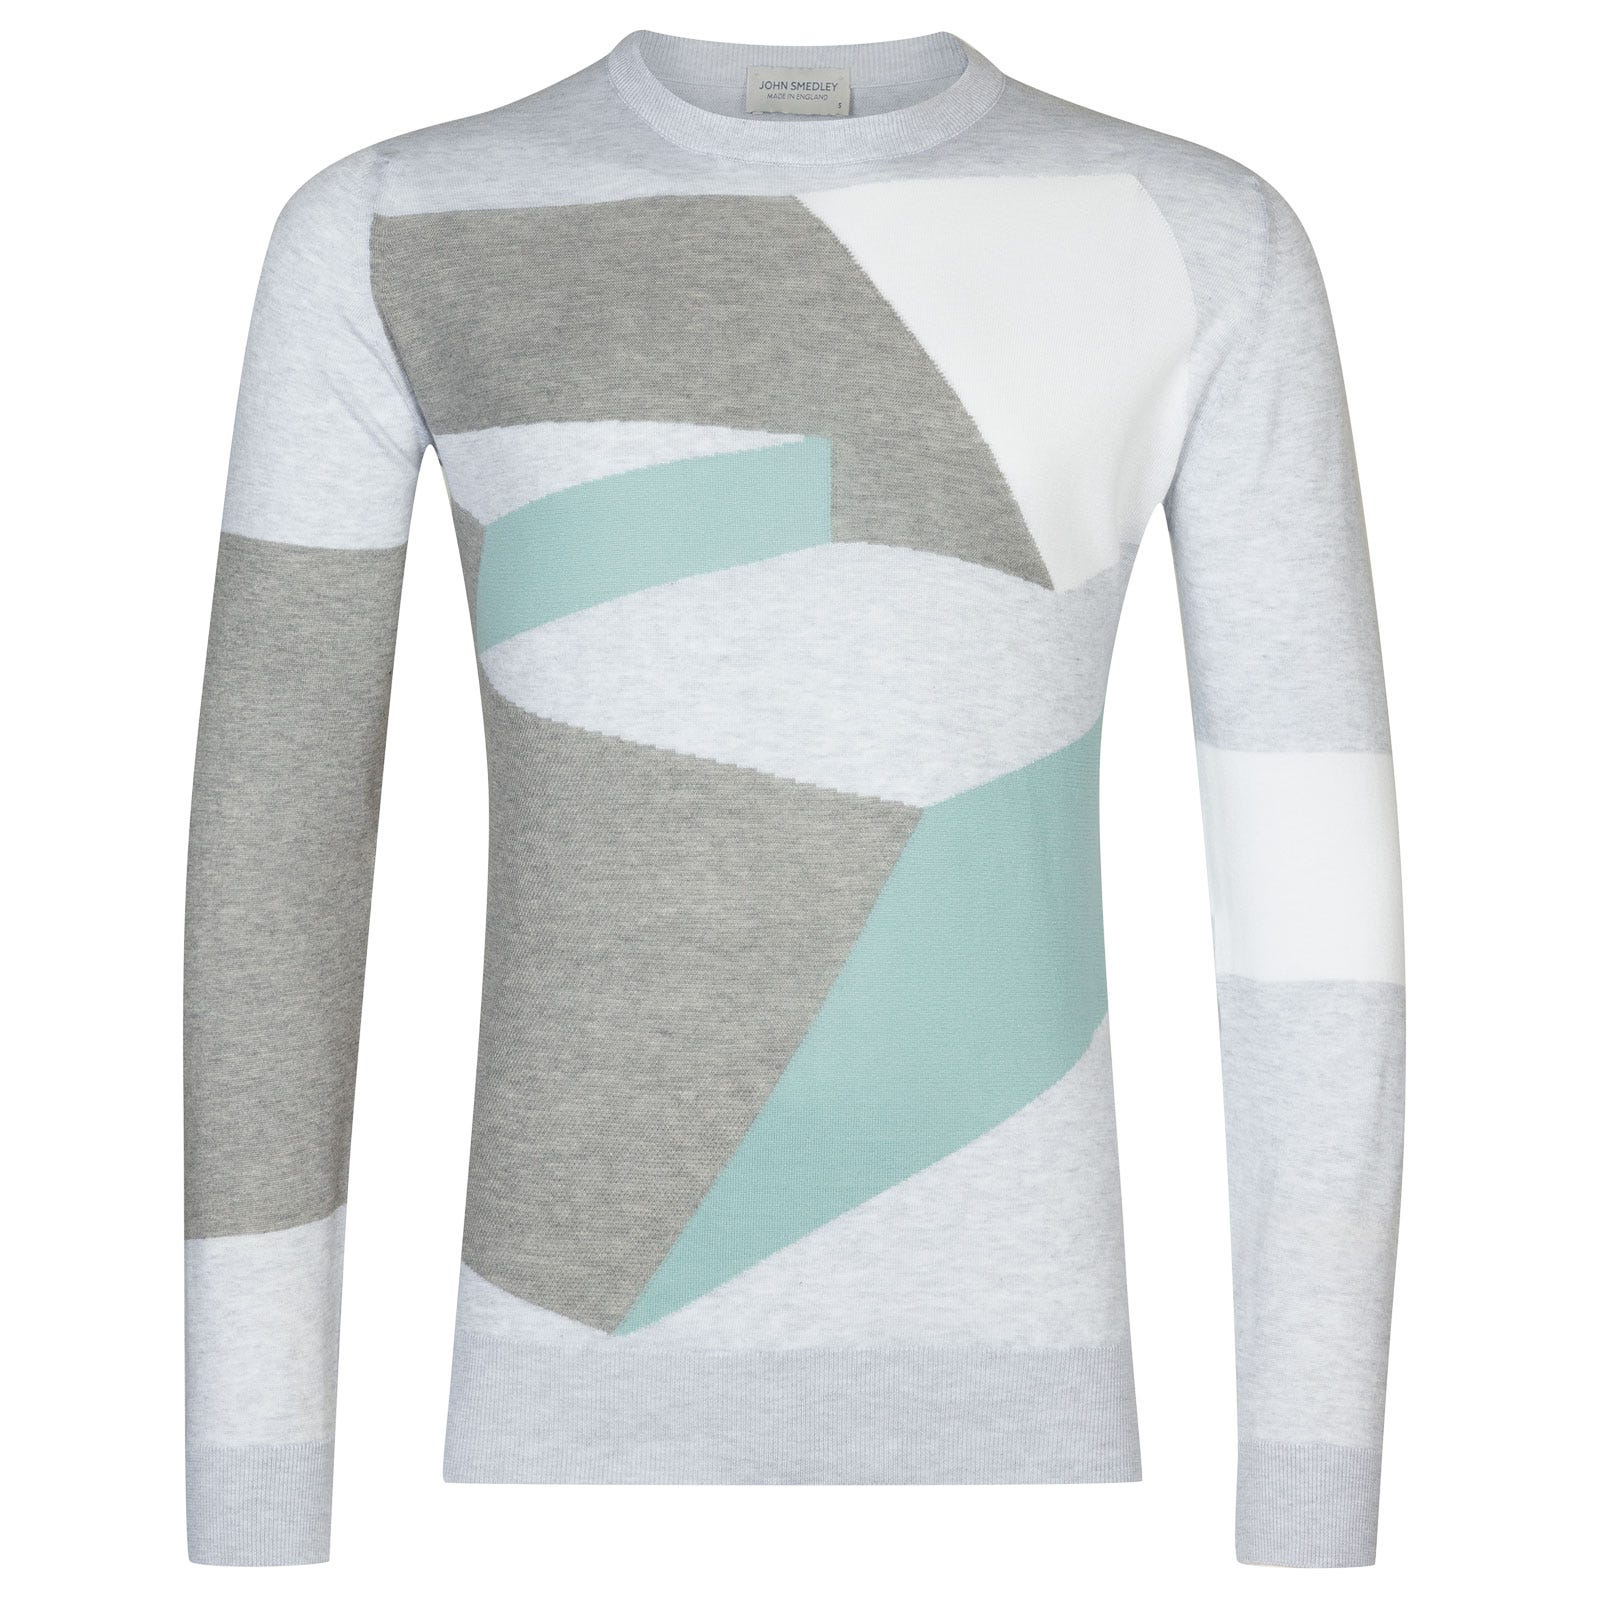 John Smedley Compose in Feather Grey-M